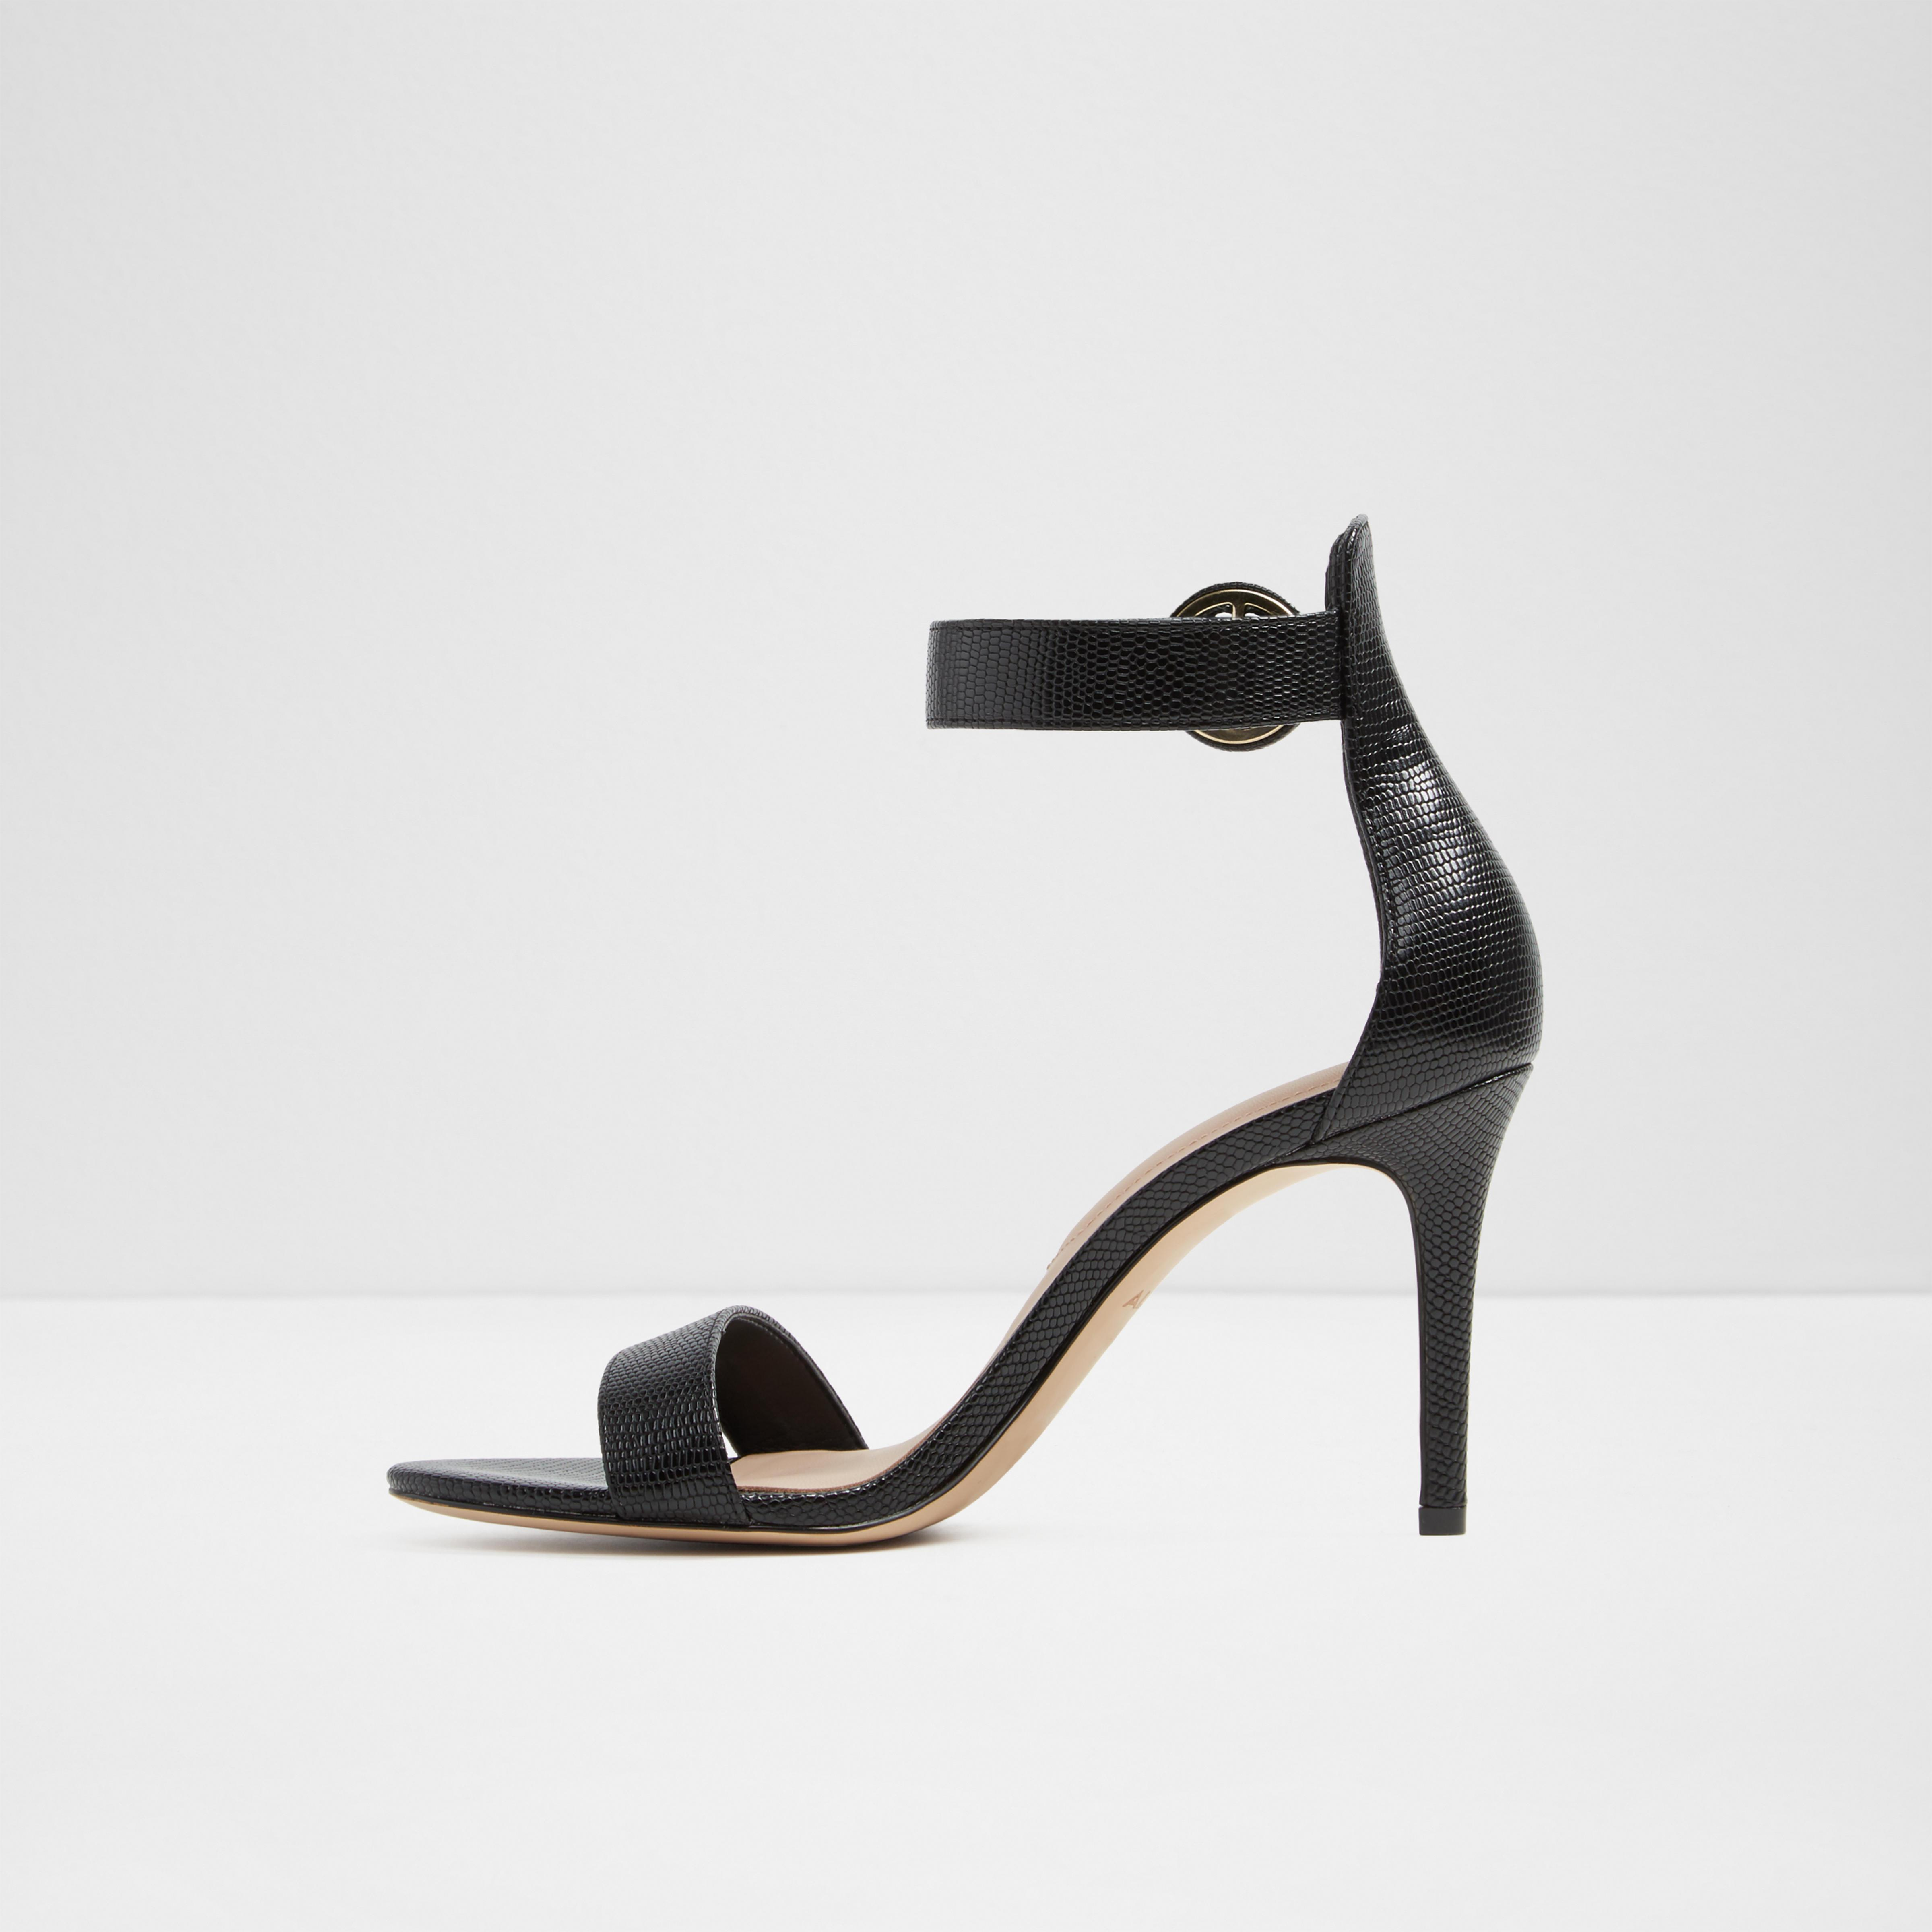 357d5df37ec6 ALDO - Black  yenalia  Stiletto Strappy Heeled Sandals - Lyst. View  fullscreen